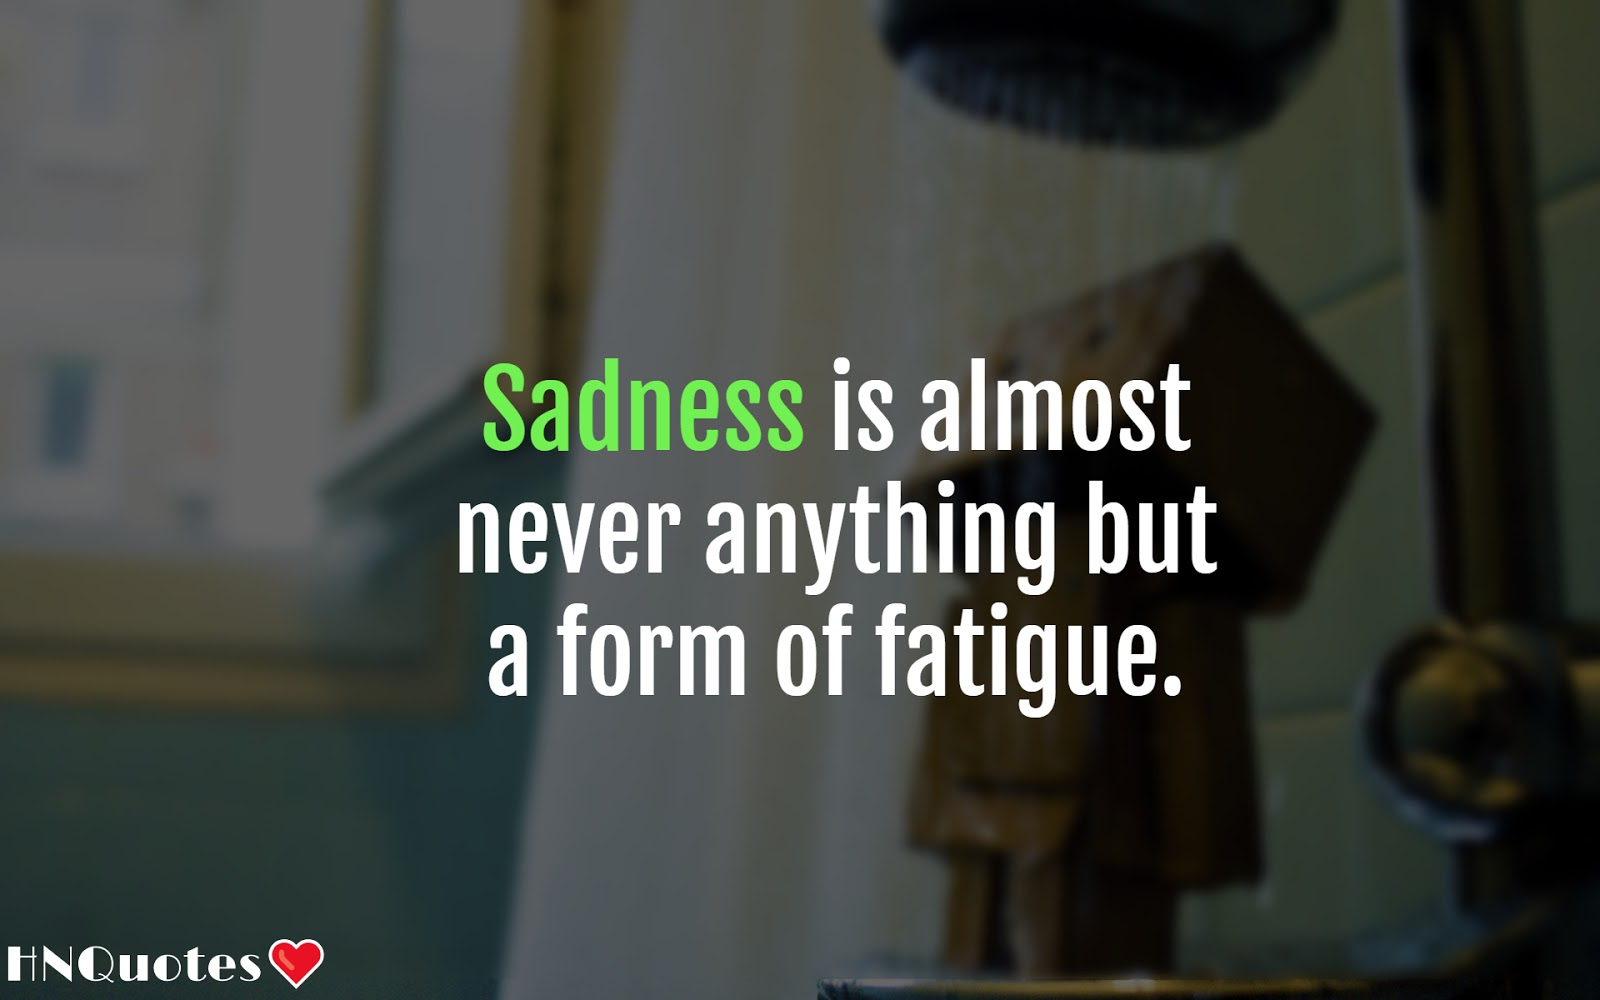 Sad-&-Emotional-Quotes-on-Life-62-Best-Emotional-Quotes[HNQuotes]